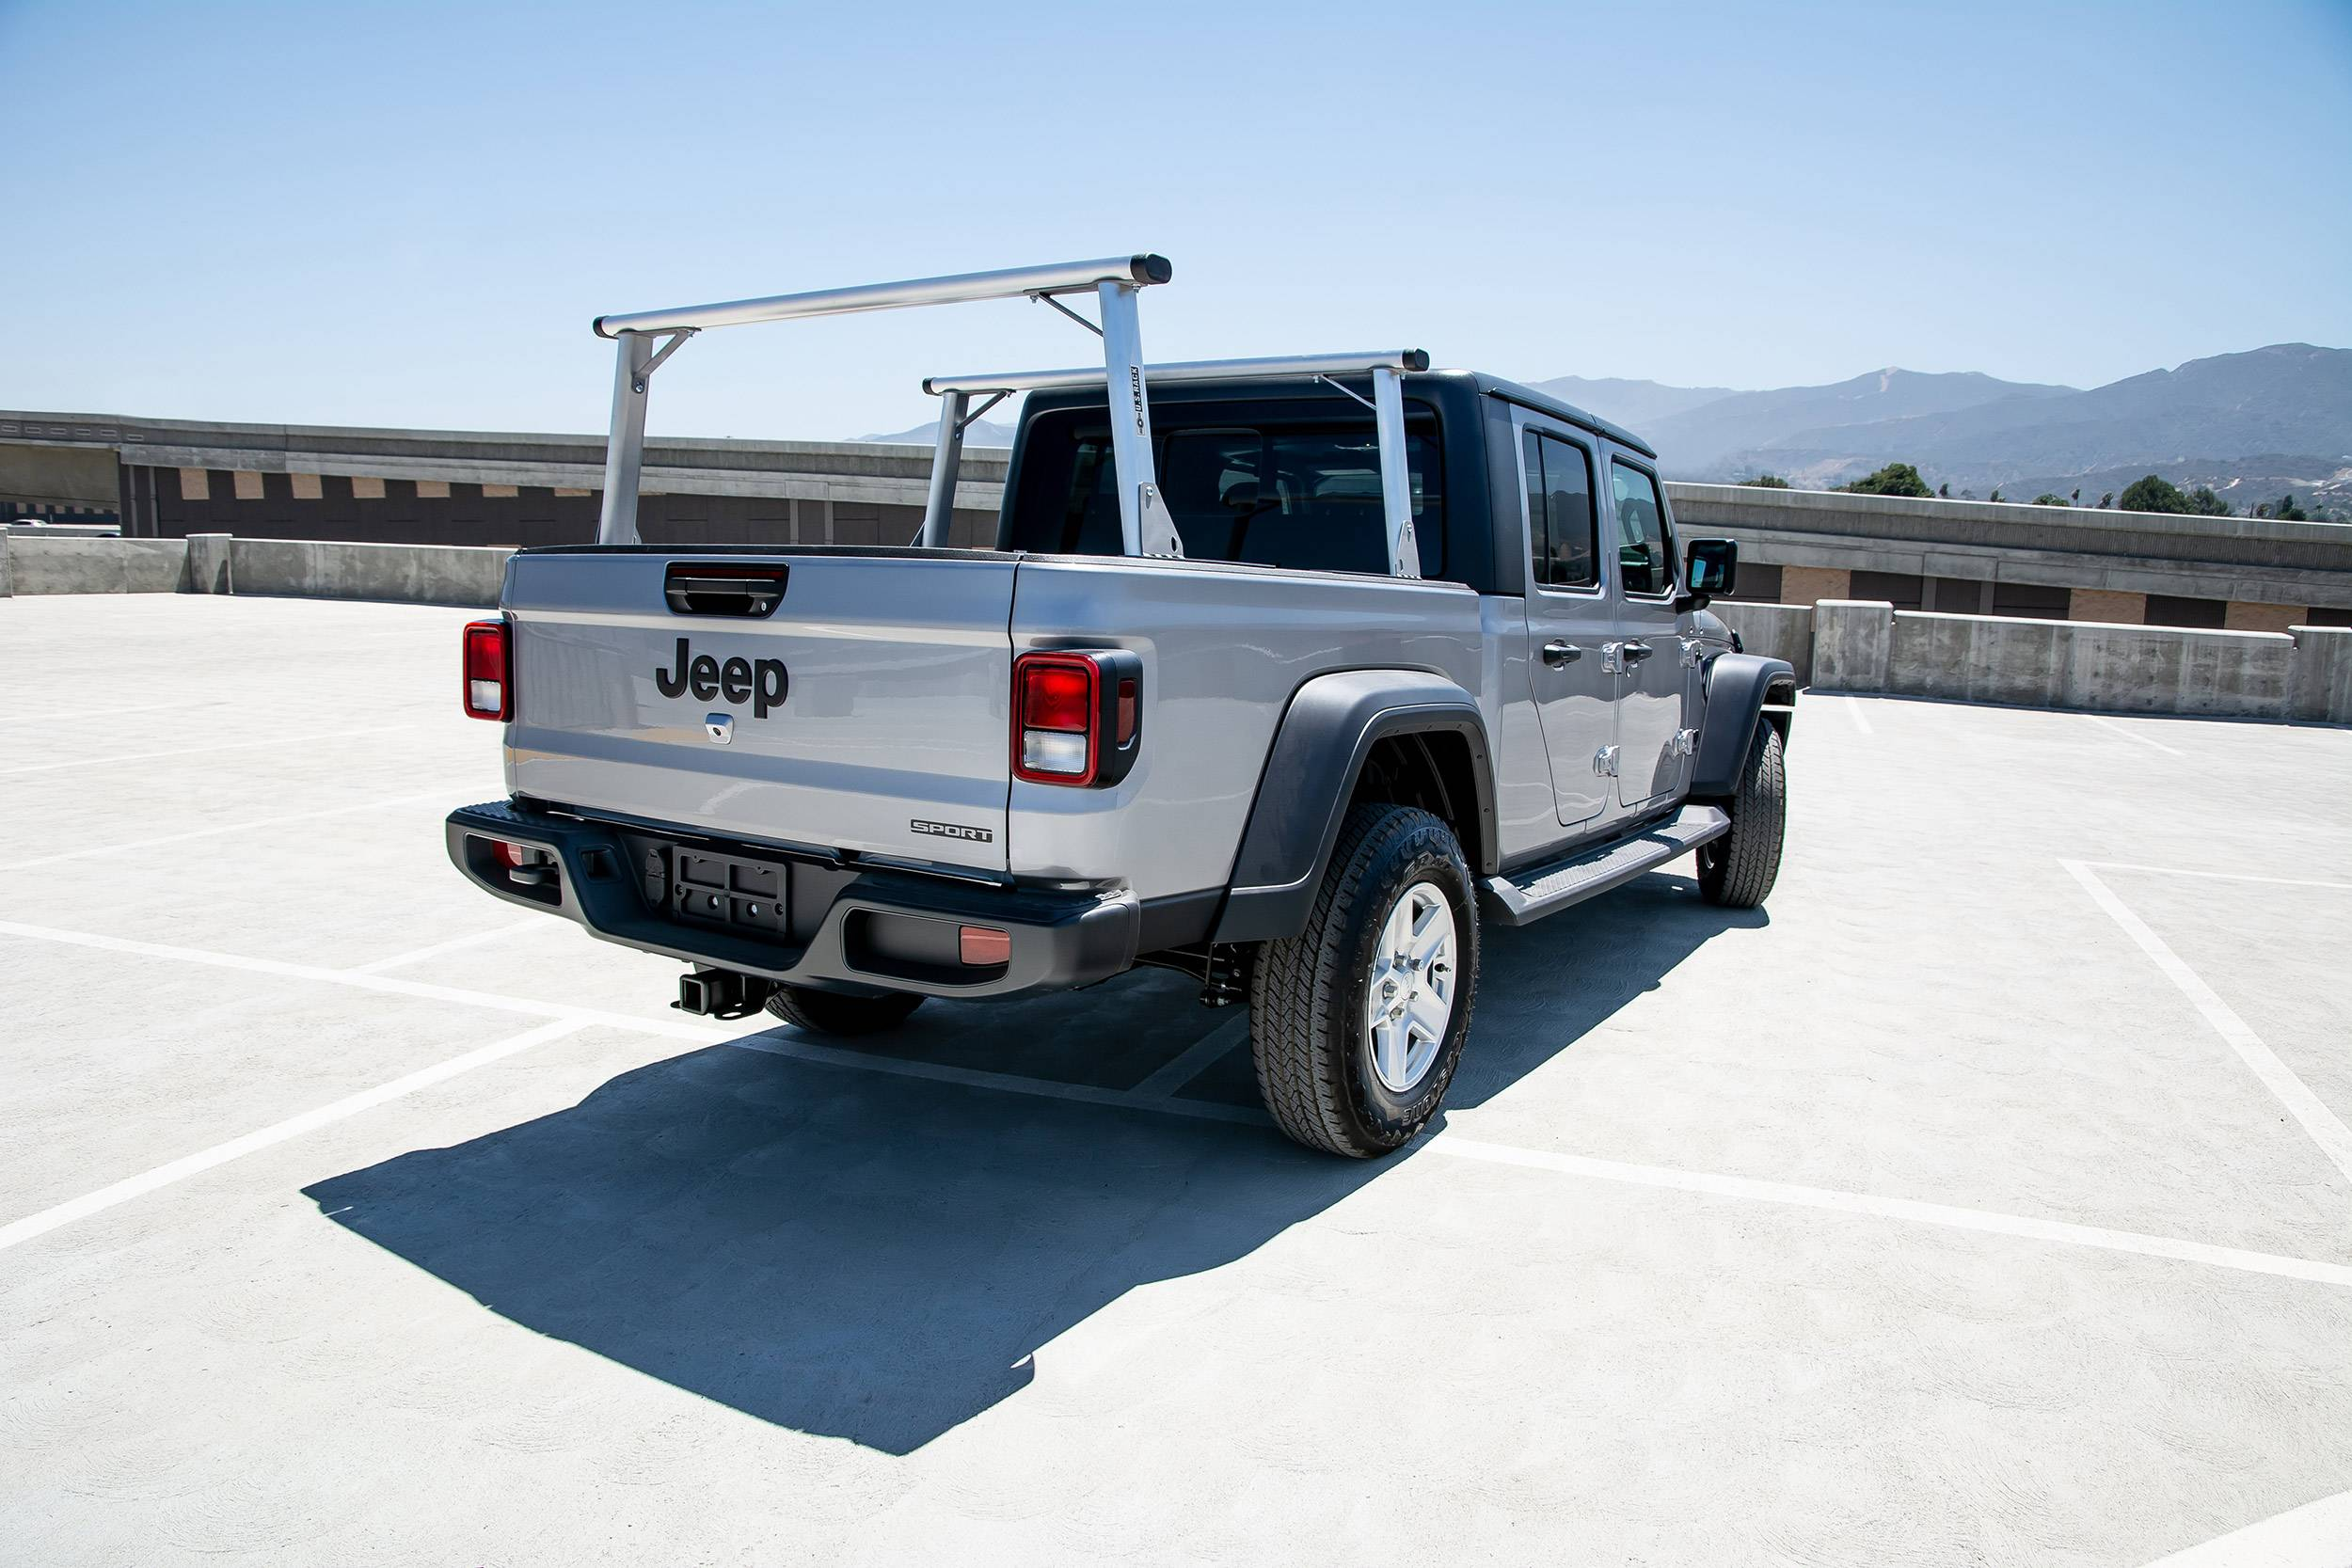 2020-2021 Jeep Gladiator Clipper Truck Rack, Fleetside, Track System, Cab Height, Brushed Cross Bar and Legs With Bead Blasted Base - PN #82240250